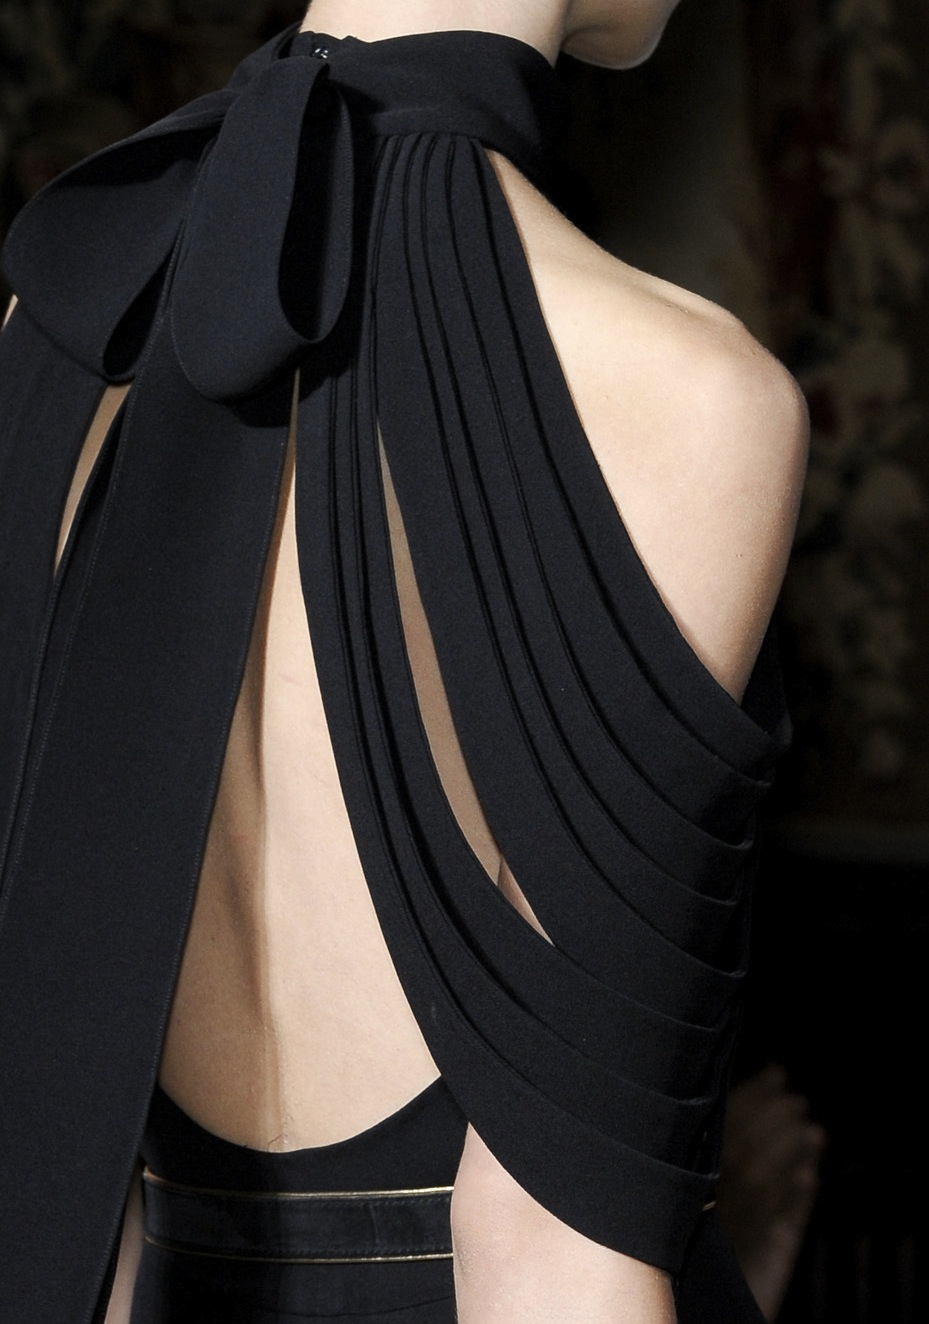 highqualityfashion :      Yves Saint Laurent SS 11